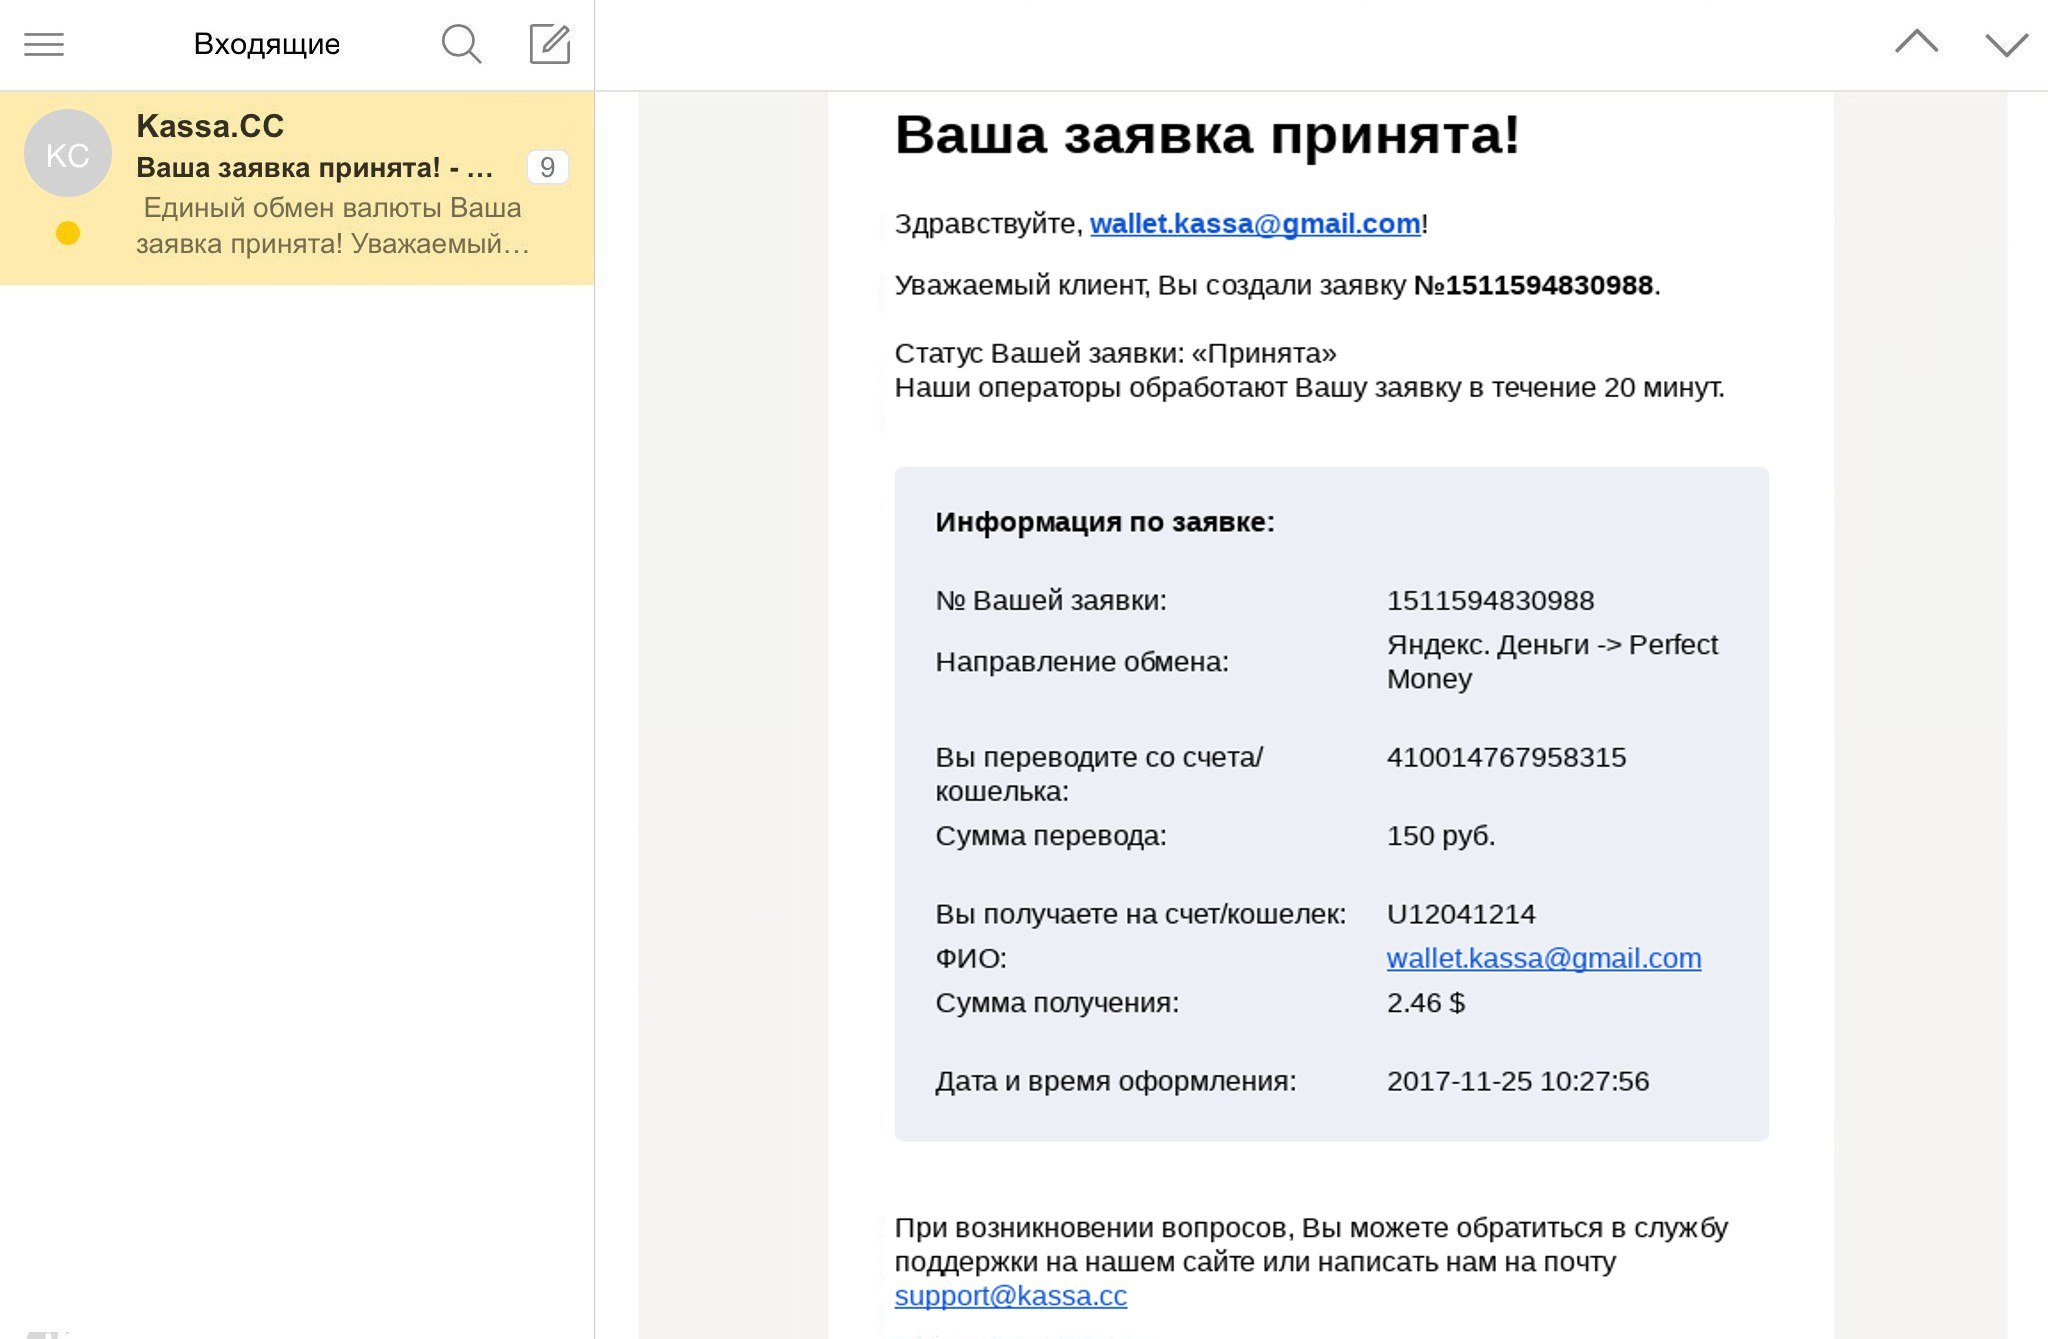 How to create a Yandex wallet 54